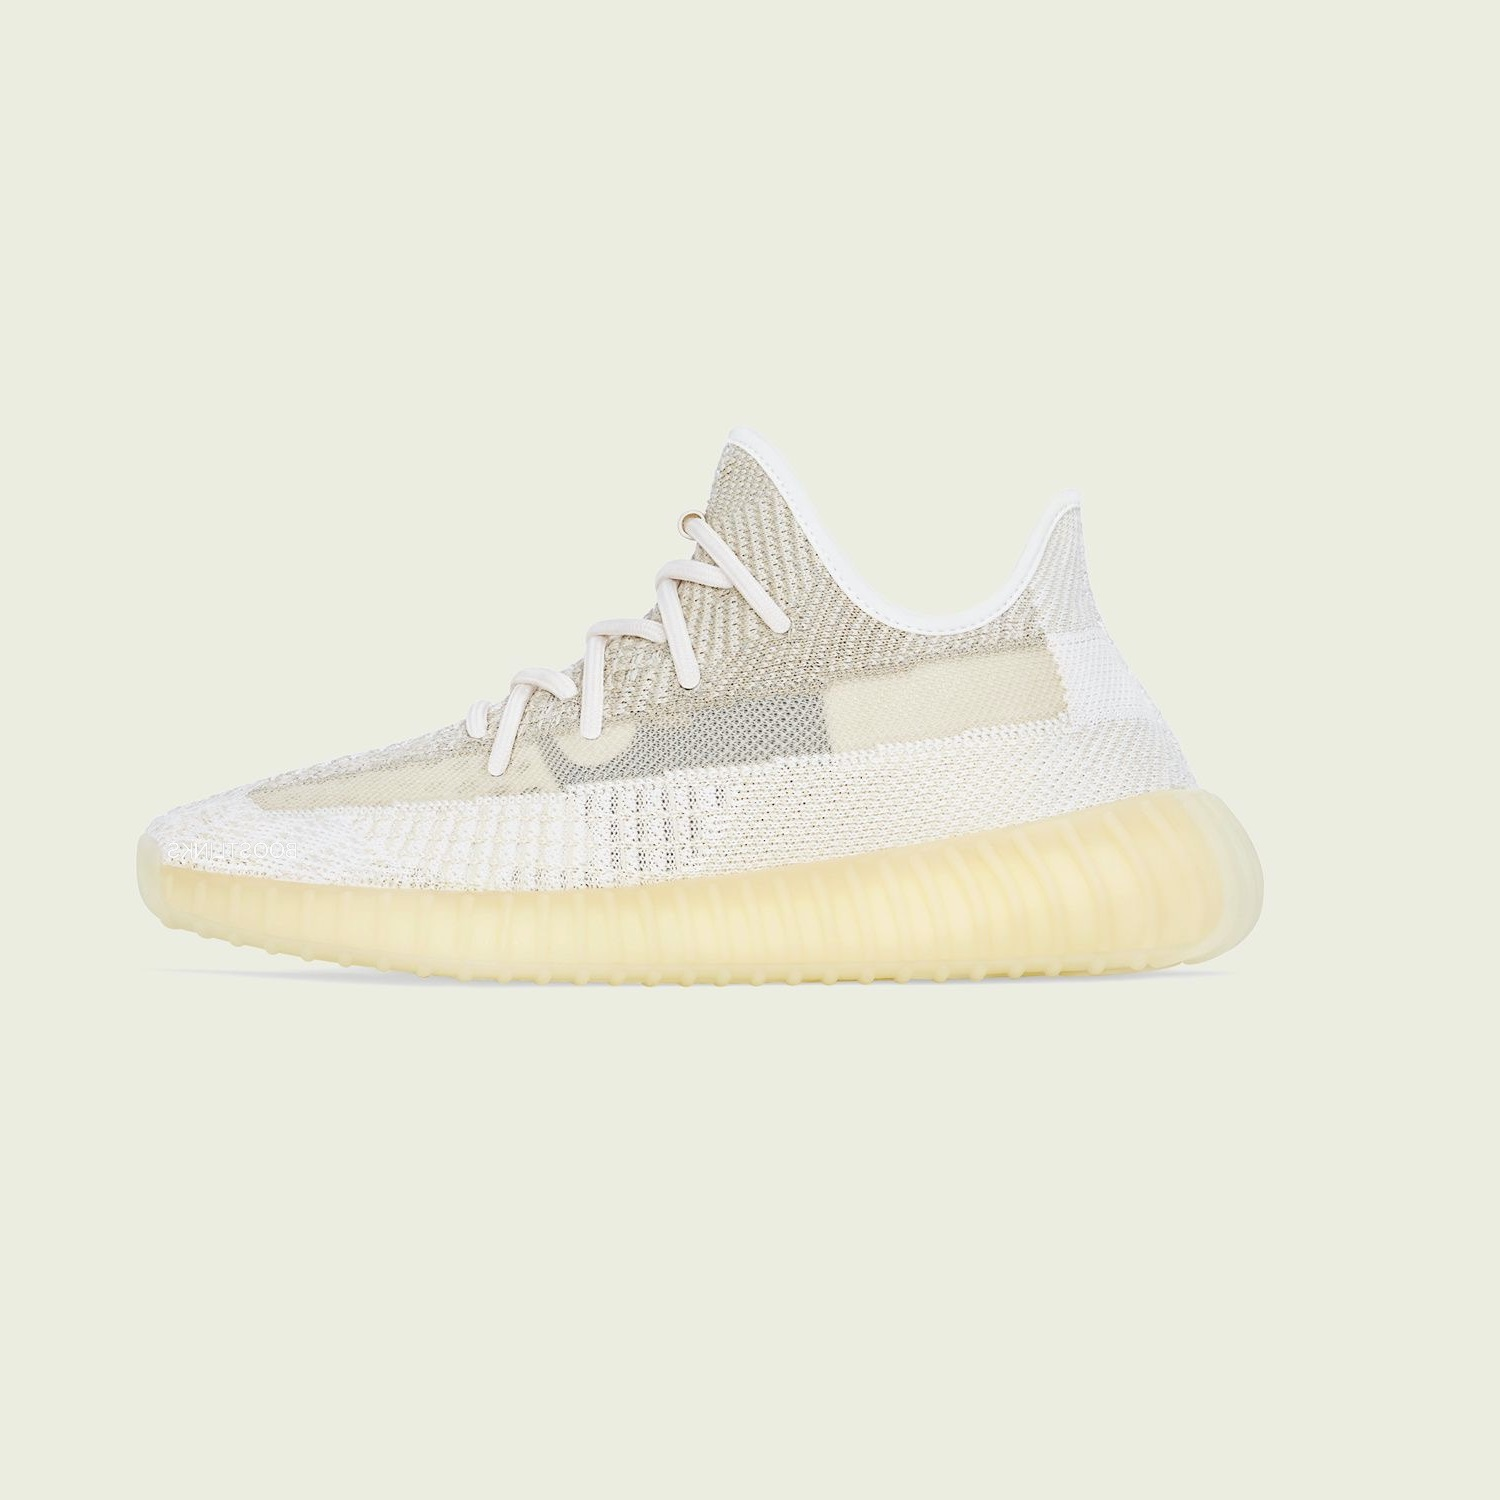 03-adidas-yeezy-boost-350-v2-natural-fz5246